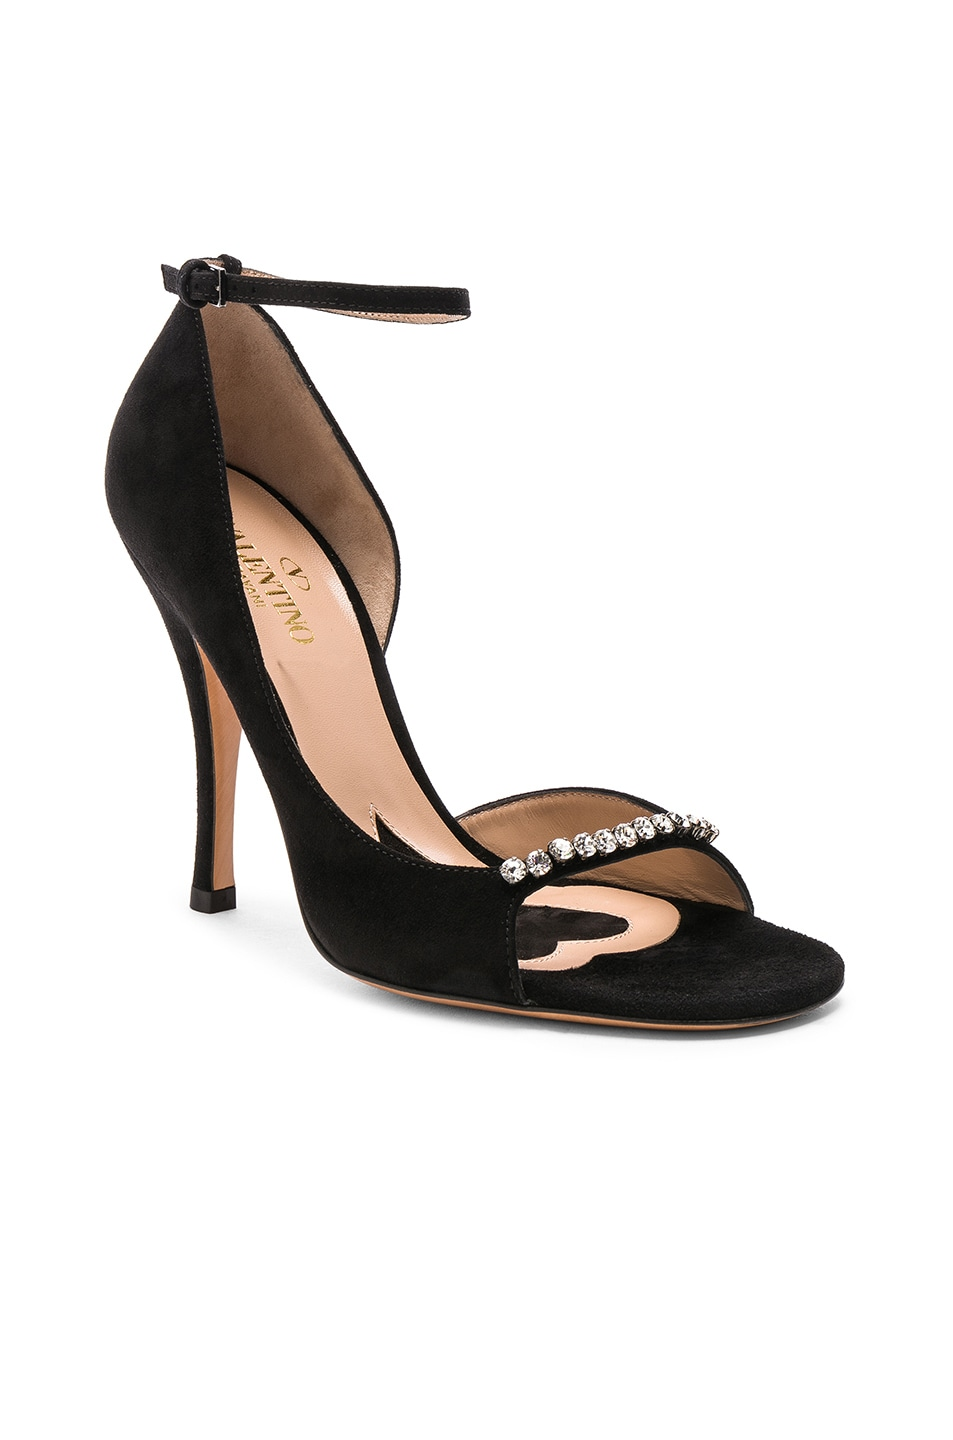 Image 2 of Valentino Suede Ringtoes Pumps in Black